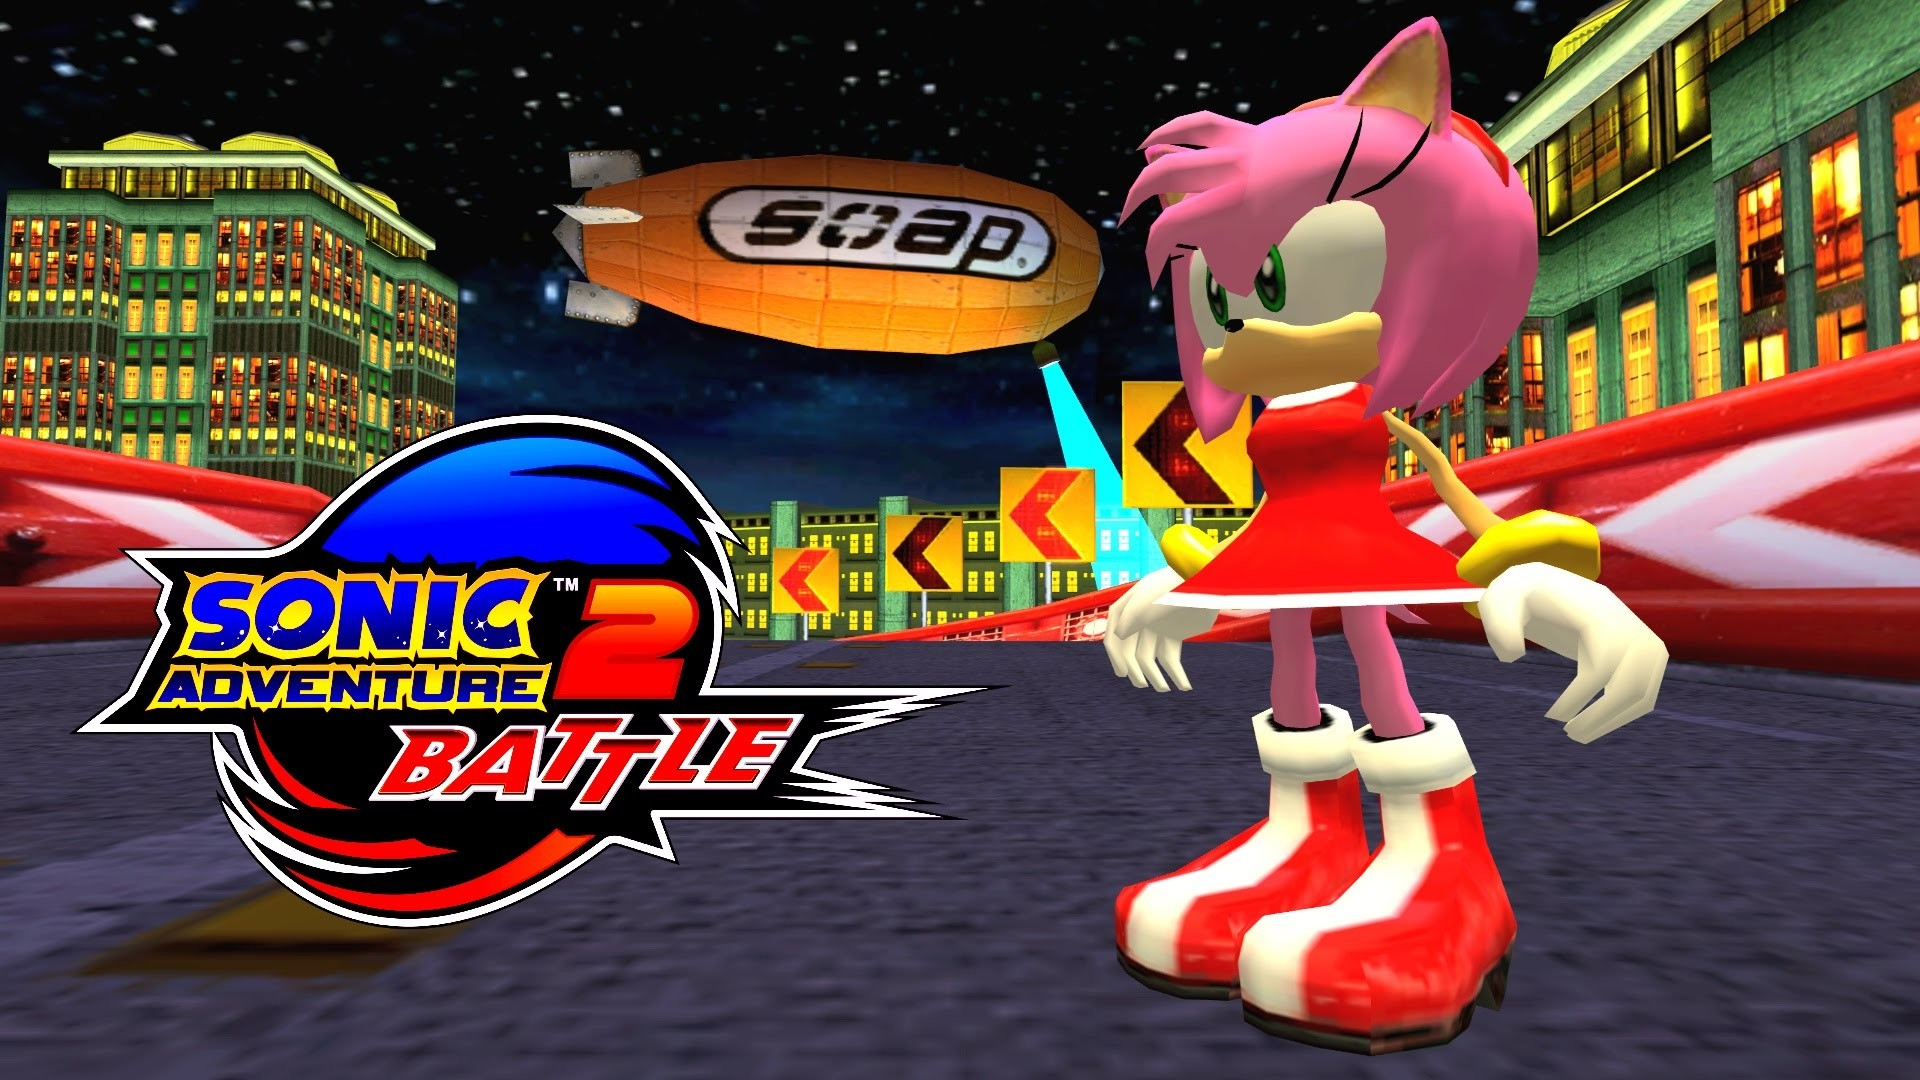 1920x1080 Sonic Adventure 2: Battle - Radical Highway - Amy (No HUD) [REAL Full HD,  Widescreen] 60 FPS - YouTube